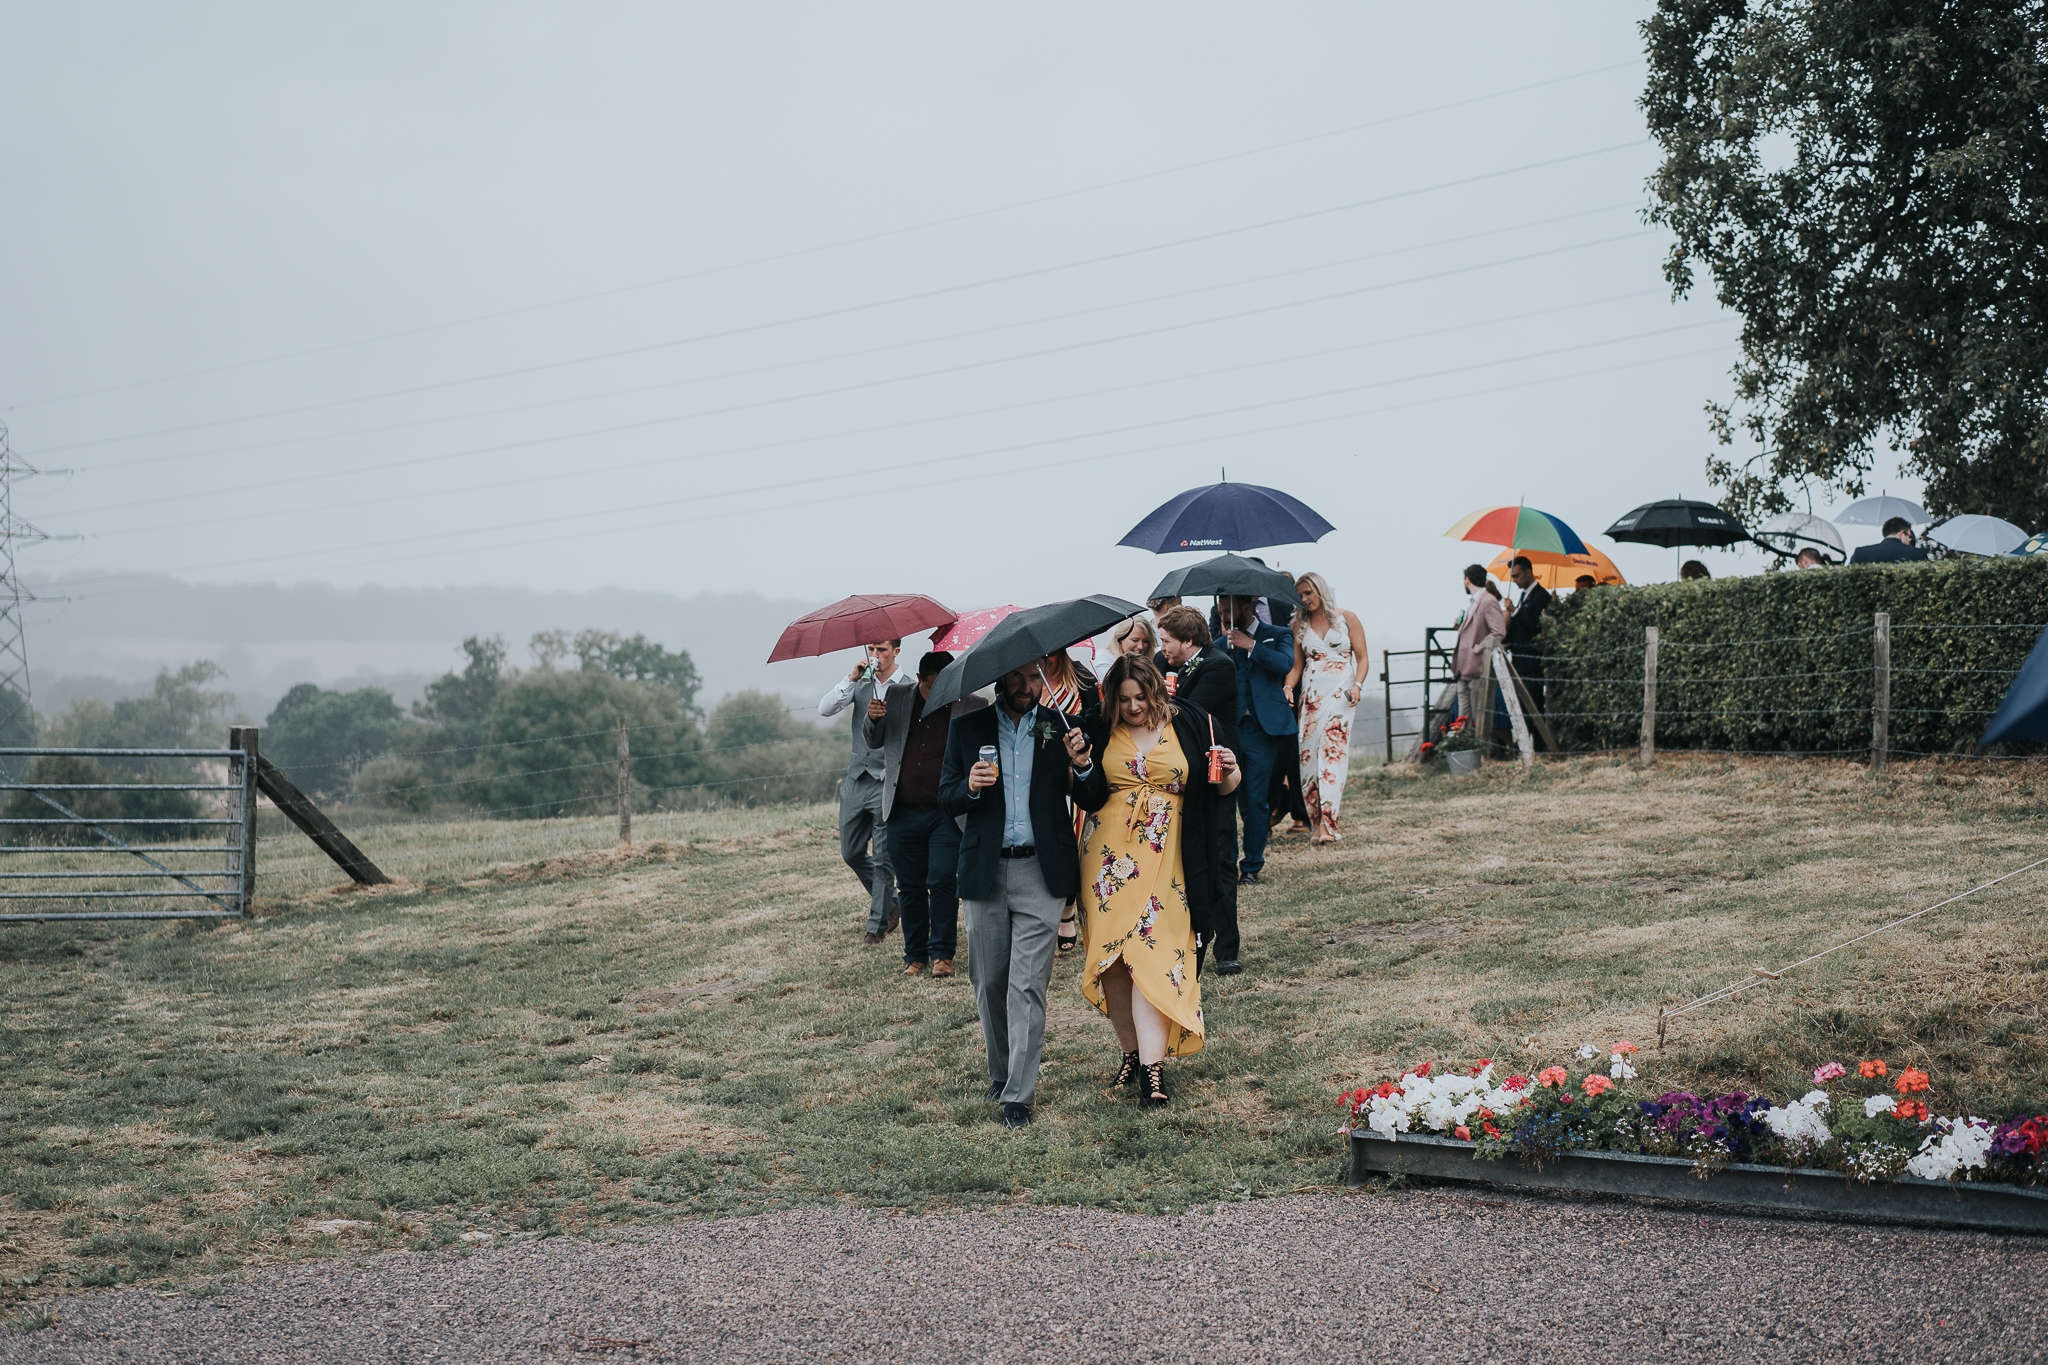 What if it rains on your wedding day? -